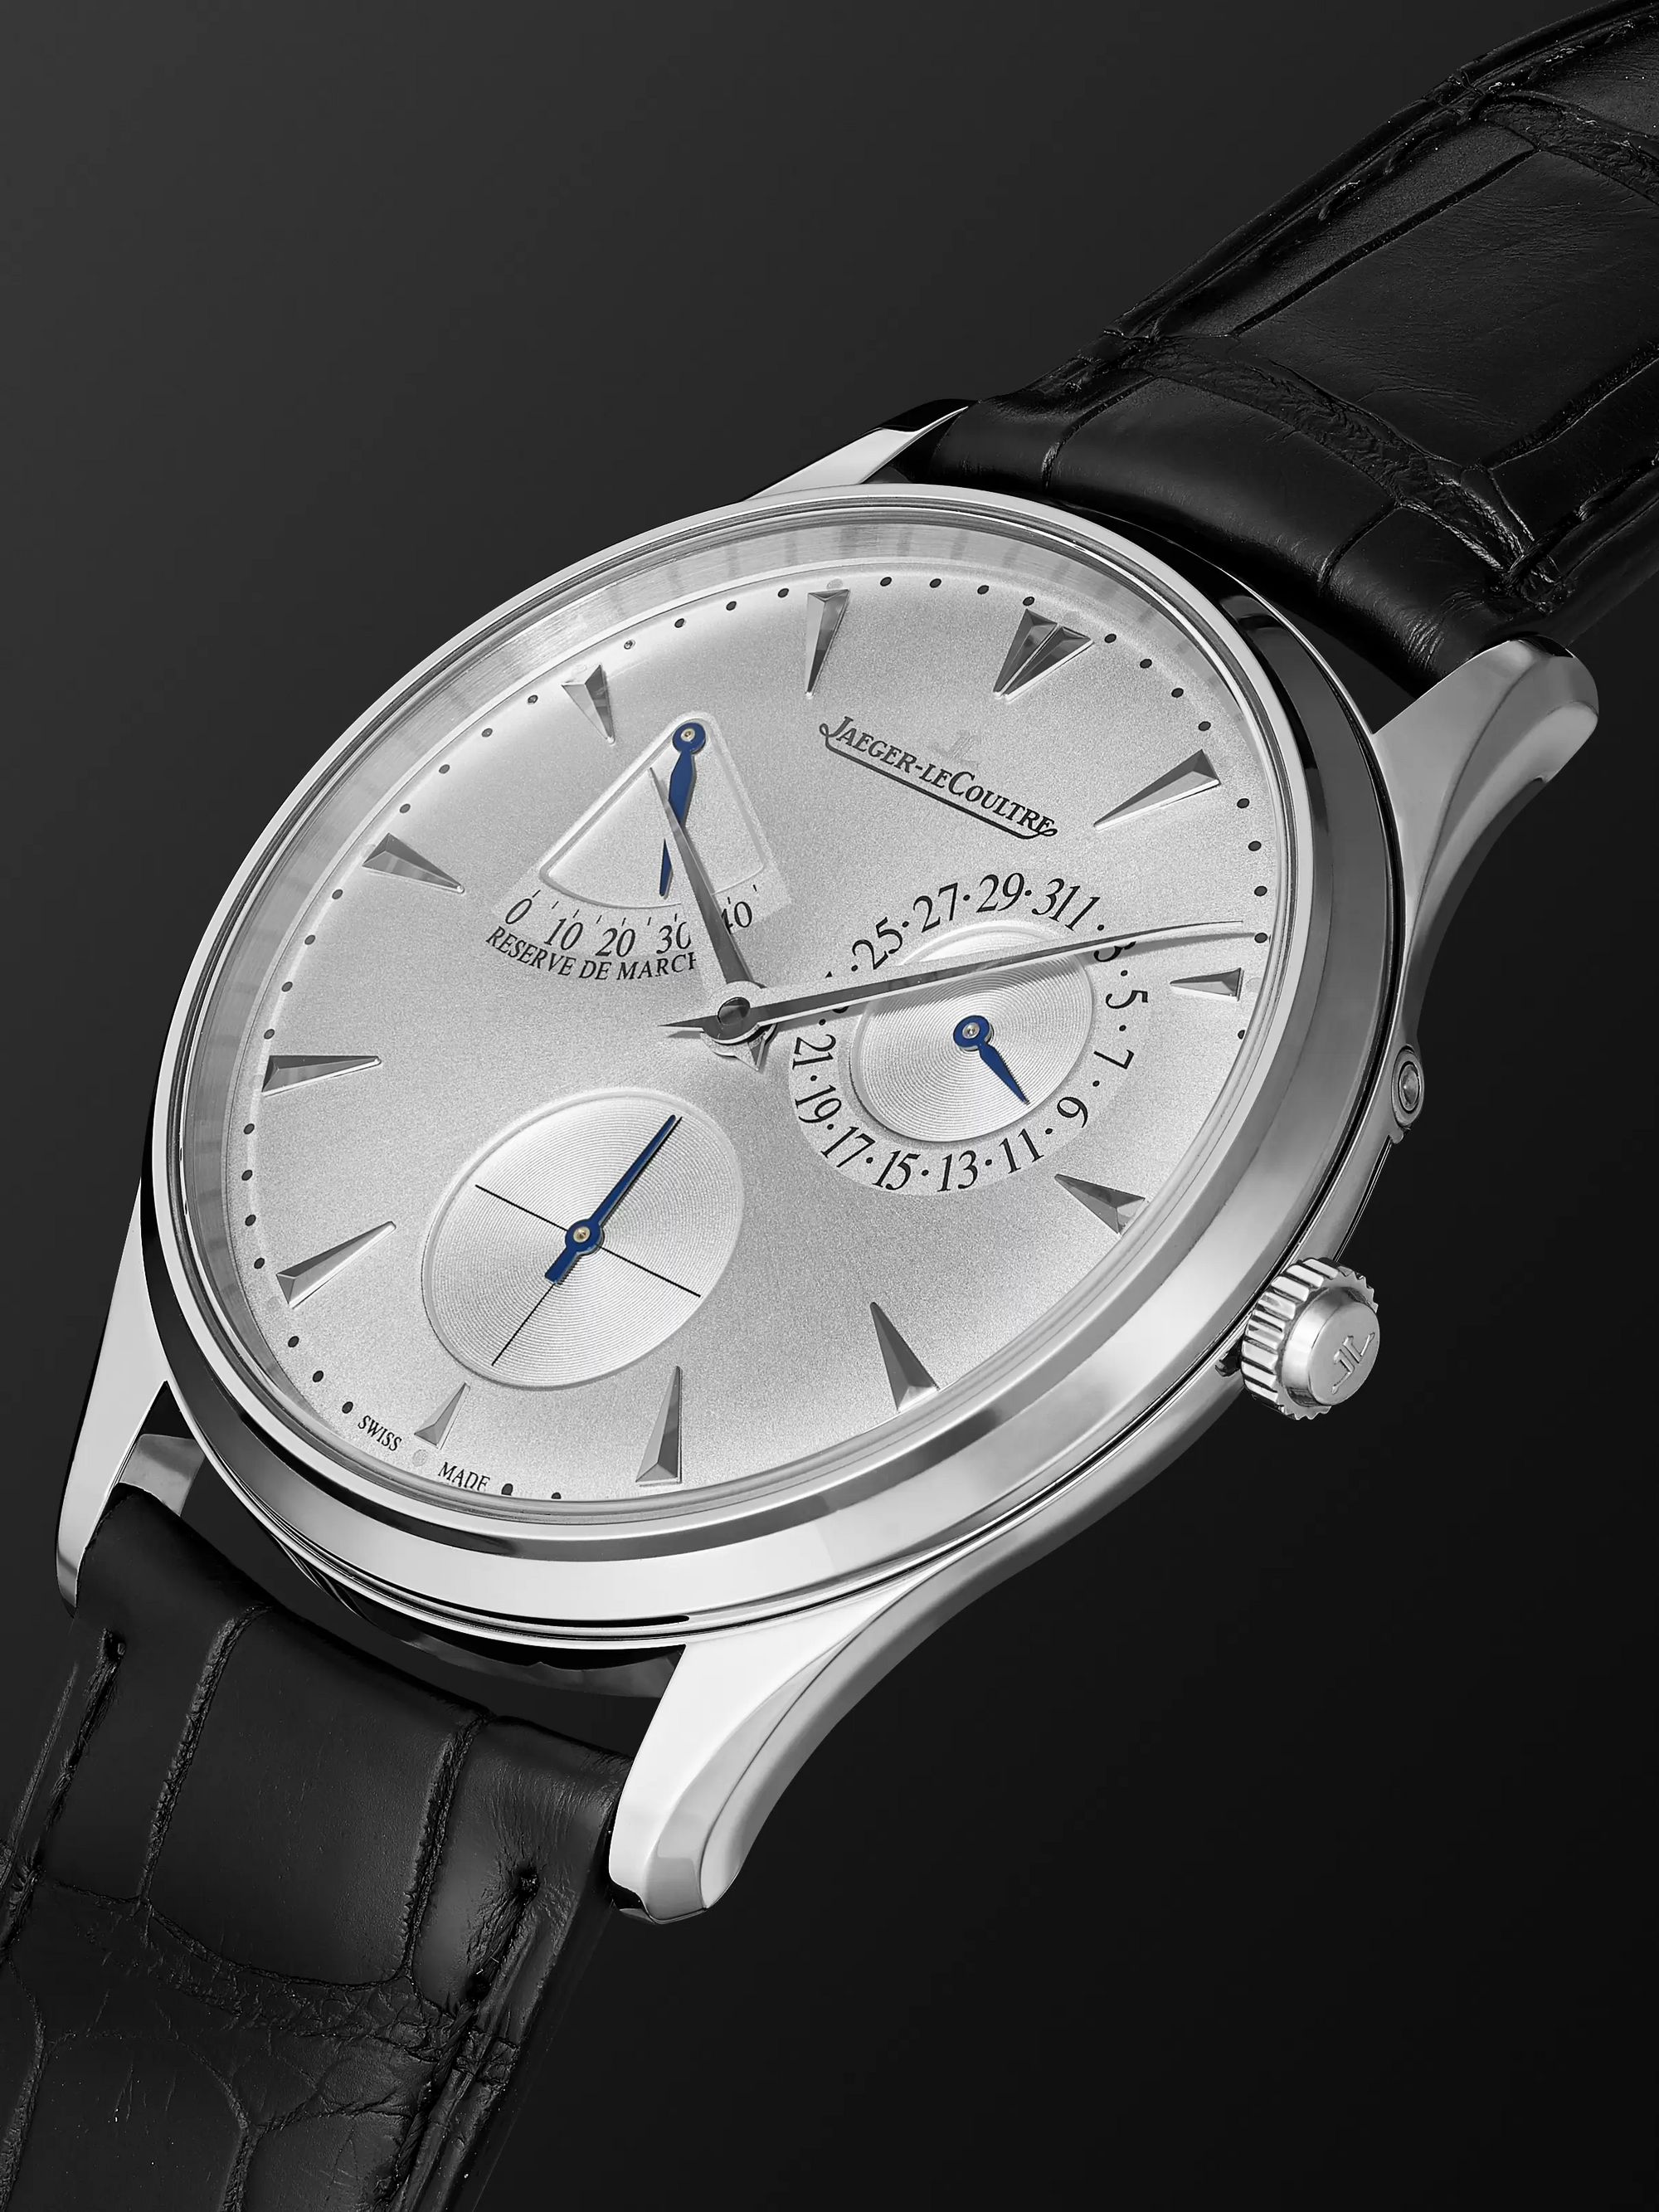 JAEGER-LECOULTRE Master Ultra Thin Réserve De Marche Automatic 39mm Stainless Steel and Alligator Watch, Ref No. Q1378420